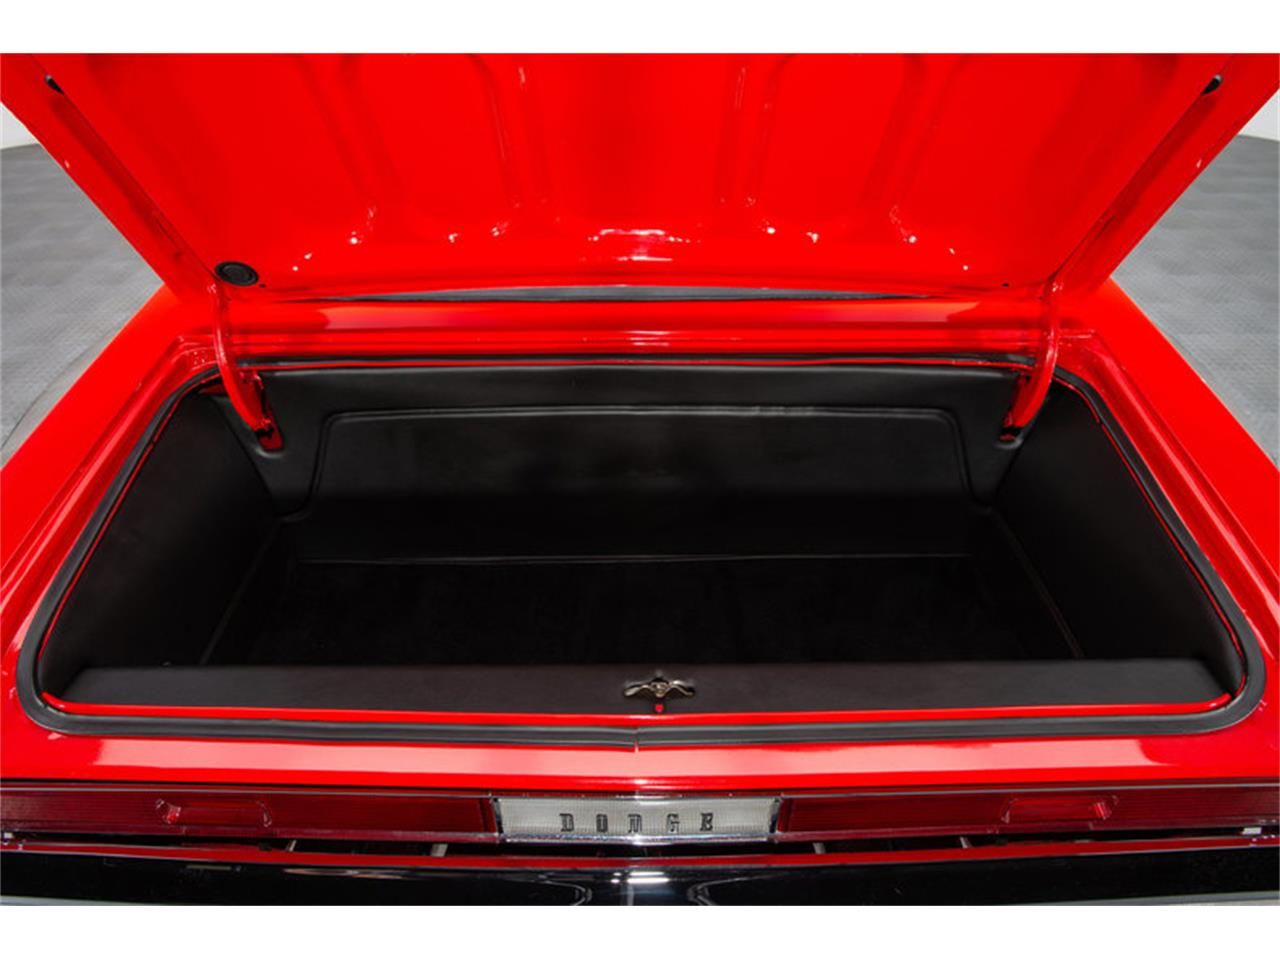 Large Picture of 1970 Dodge Challenger R/T located in North Carolina - $89,900.00 - F9K4